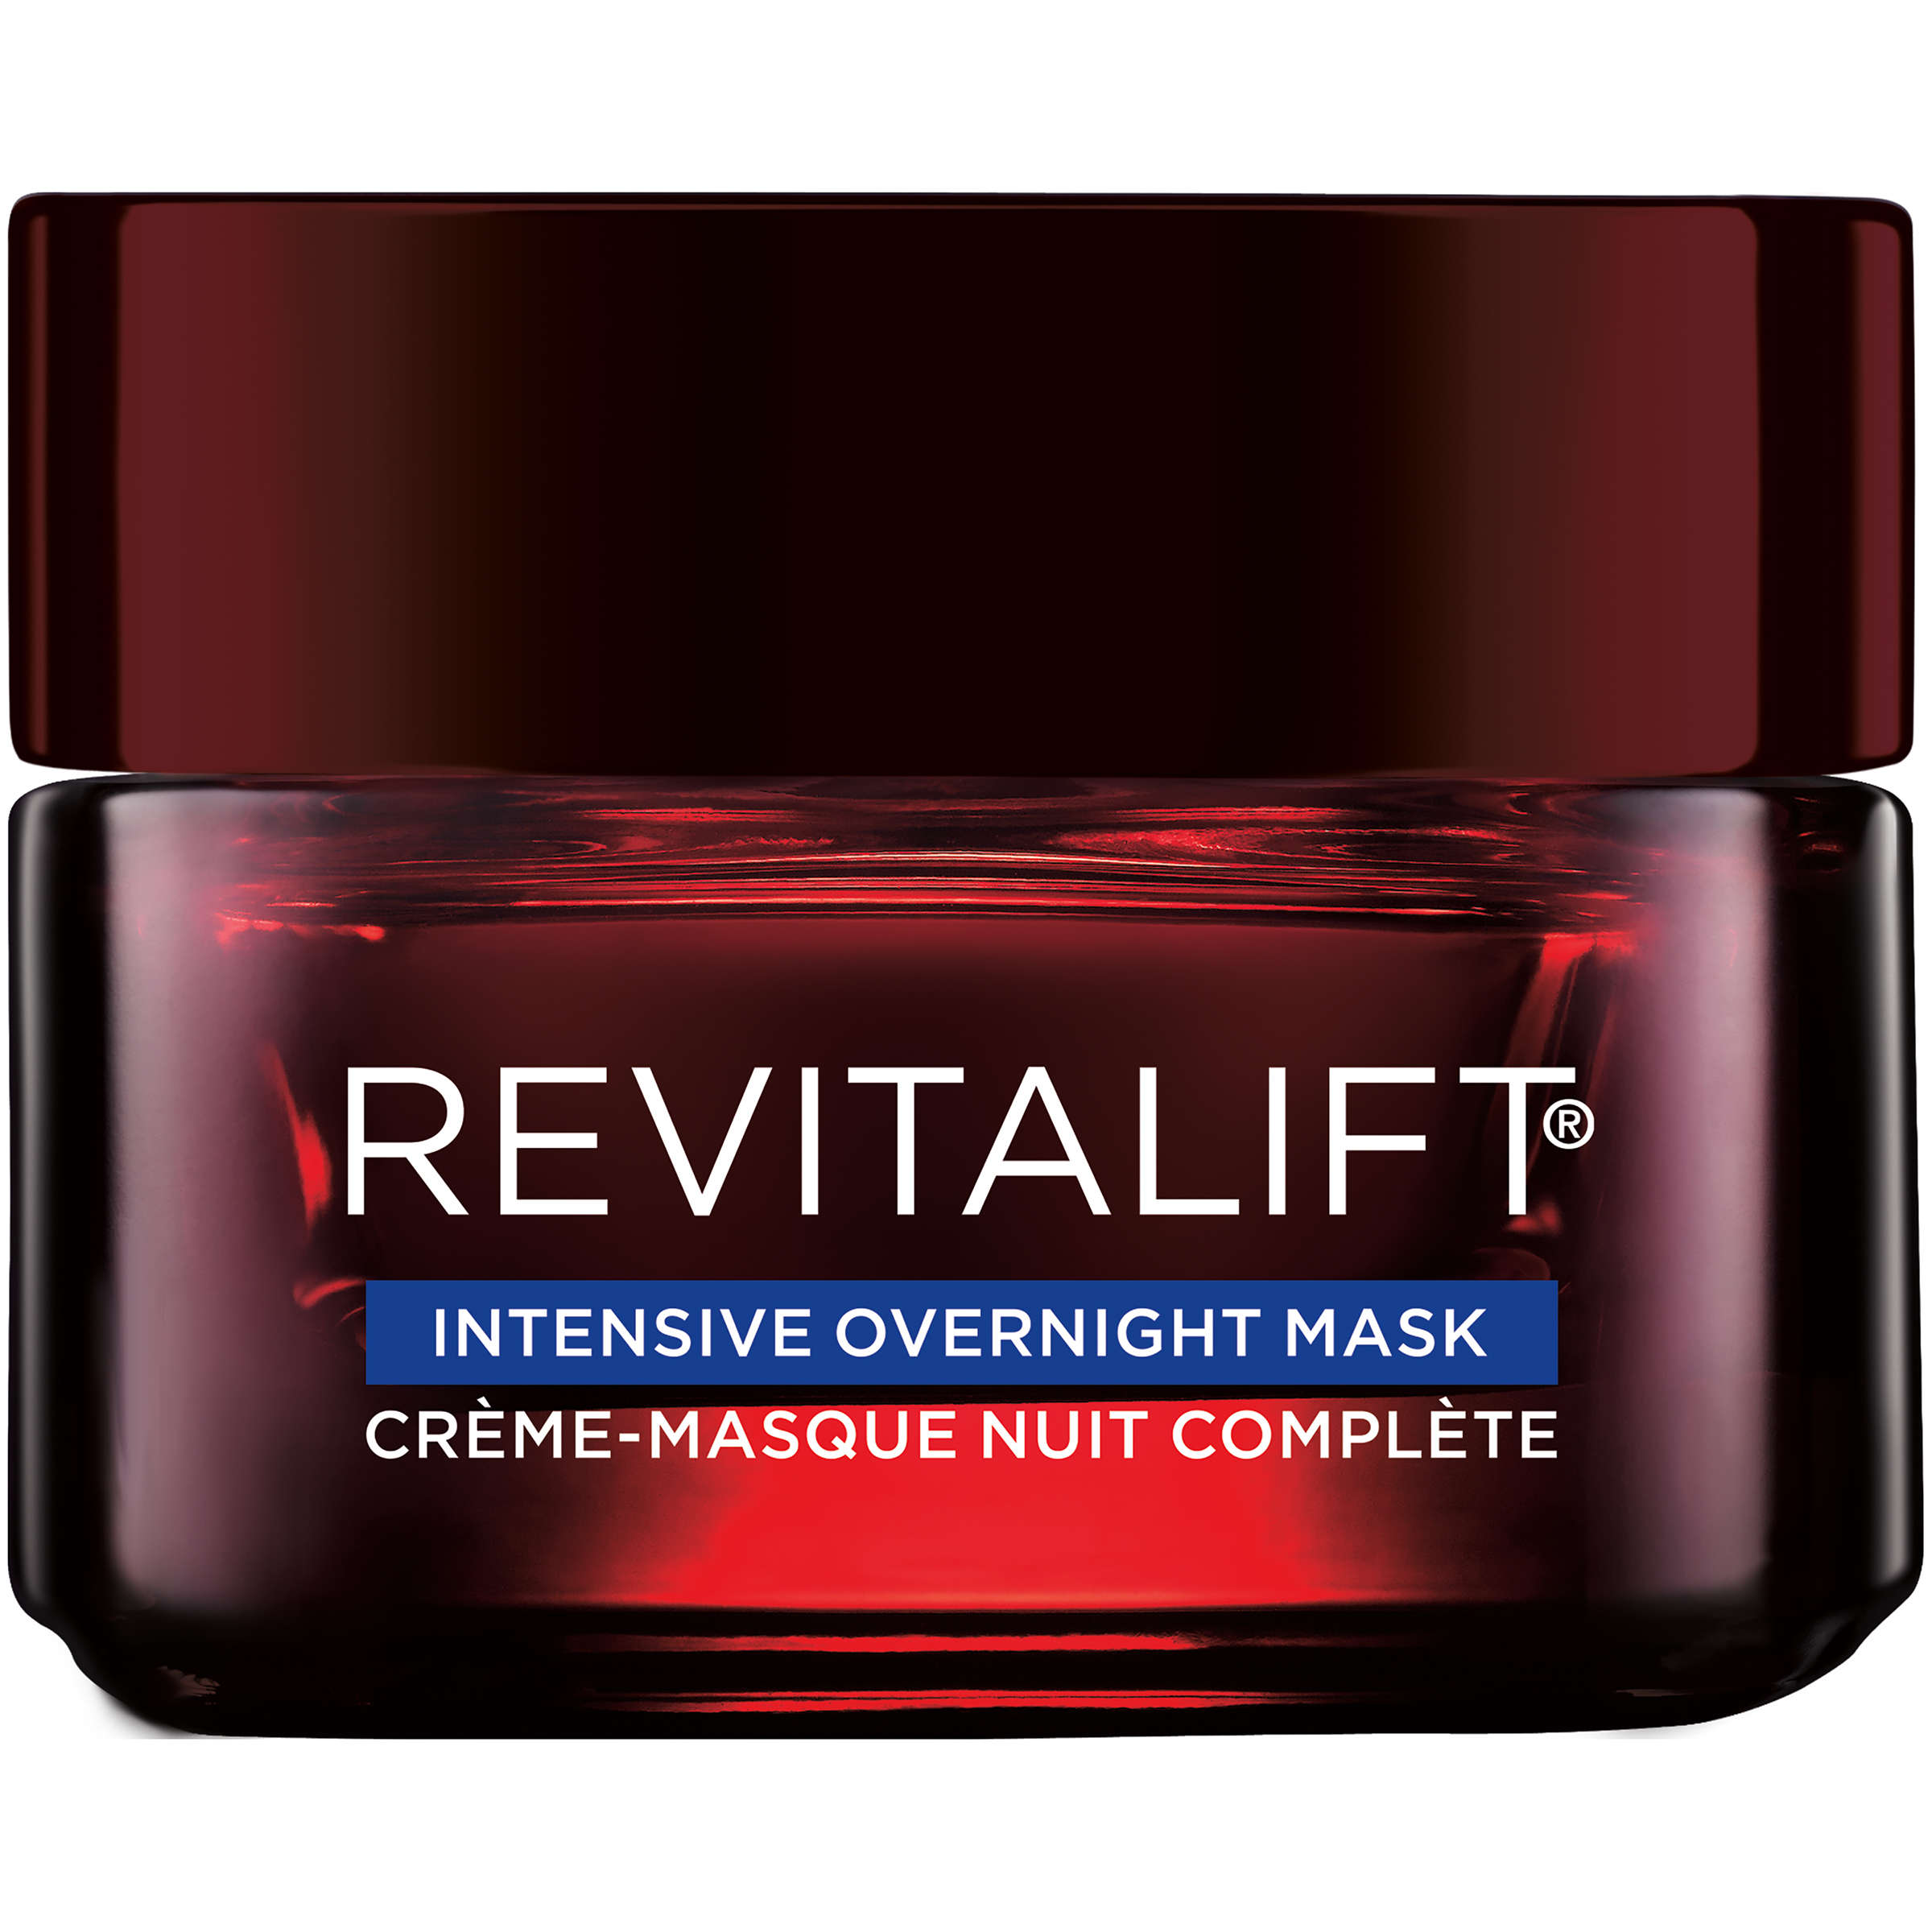 cismis LOreal Paris Advanced Revita Lift Triple Power Intensive Overnight Mask - Night Cream for all Skin Types: 10 Best Night Creams Available In India